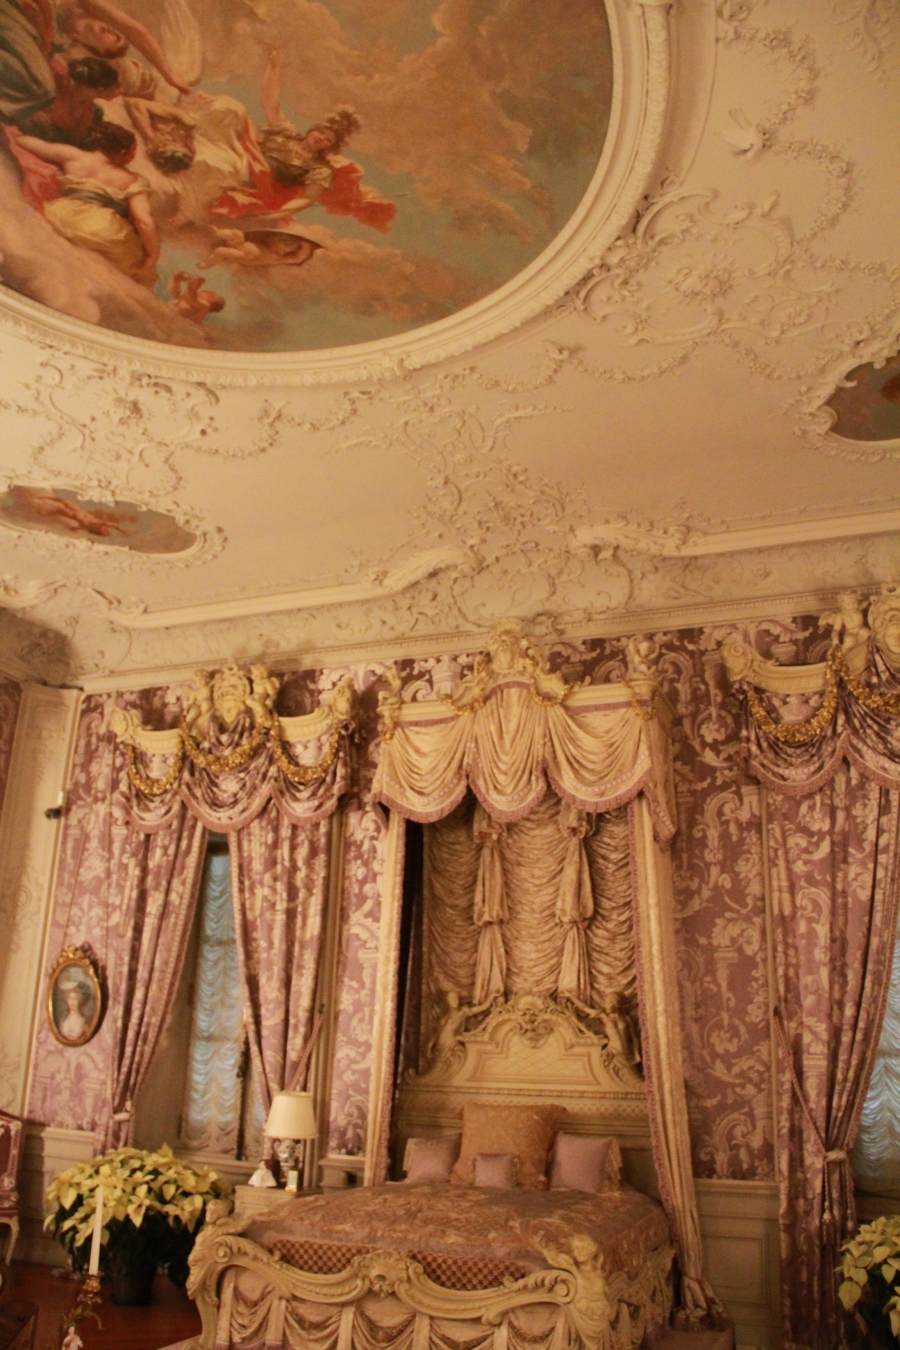 newport marble house pink room ceiling